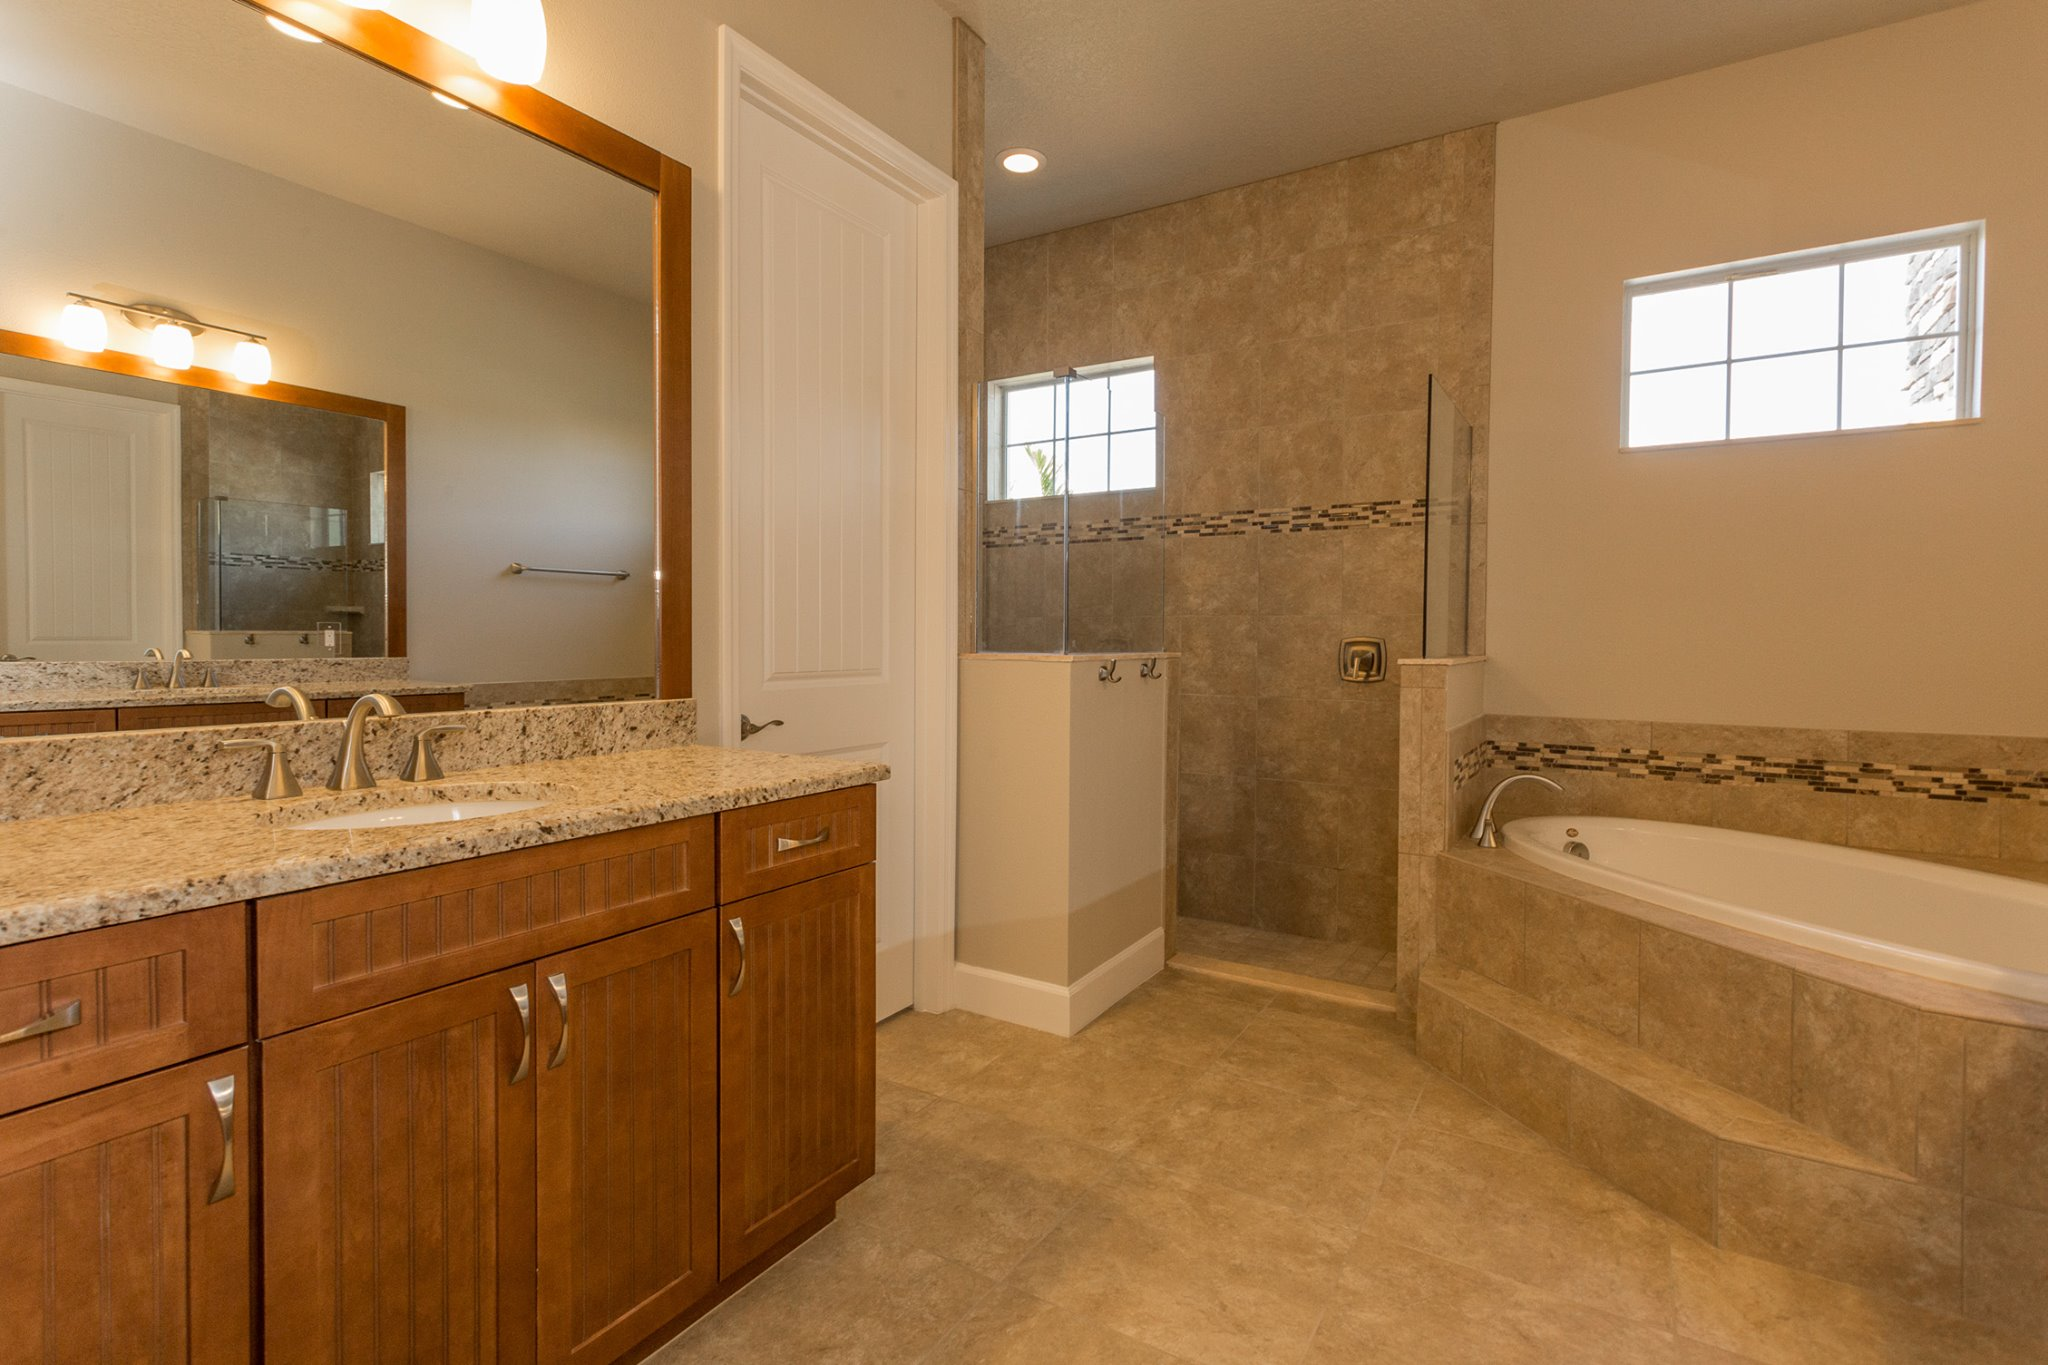 Bathroom Remodeling Melbourne Fl new melbourne home kitchen and bath with marsh cabinets and